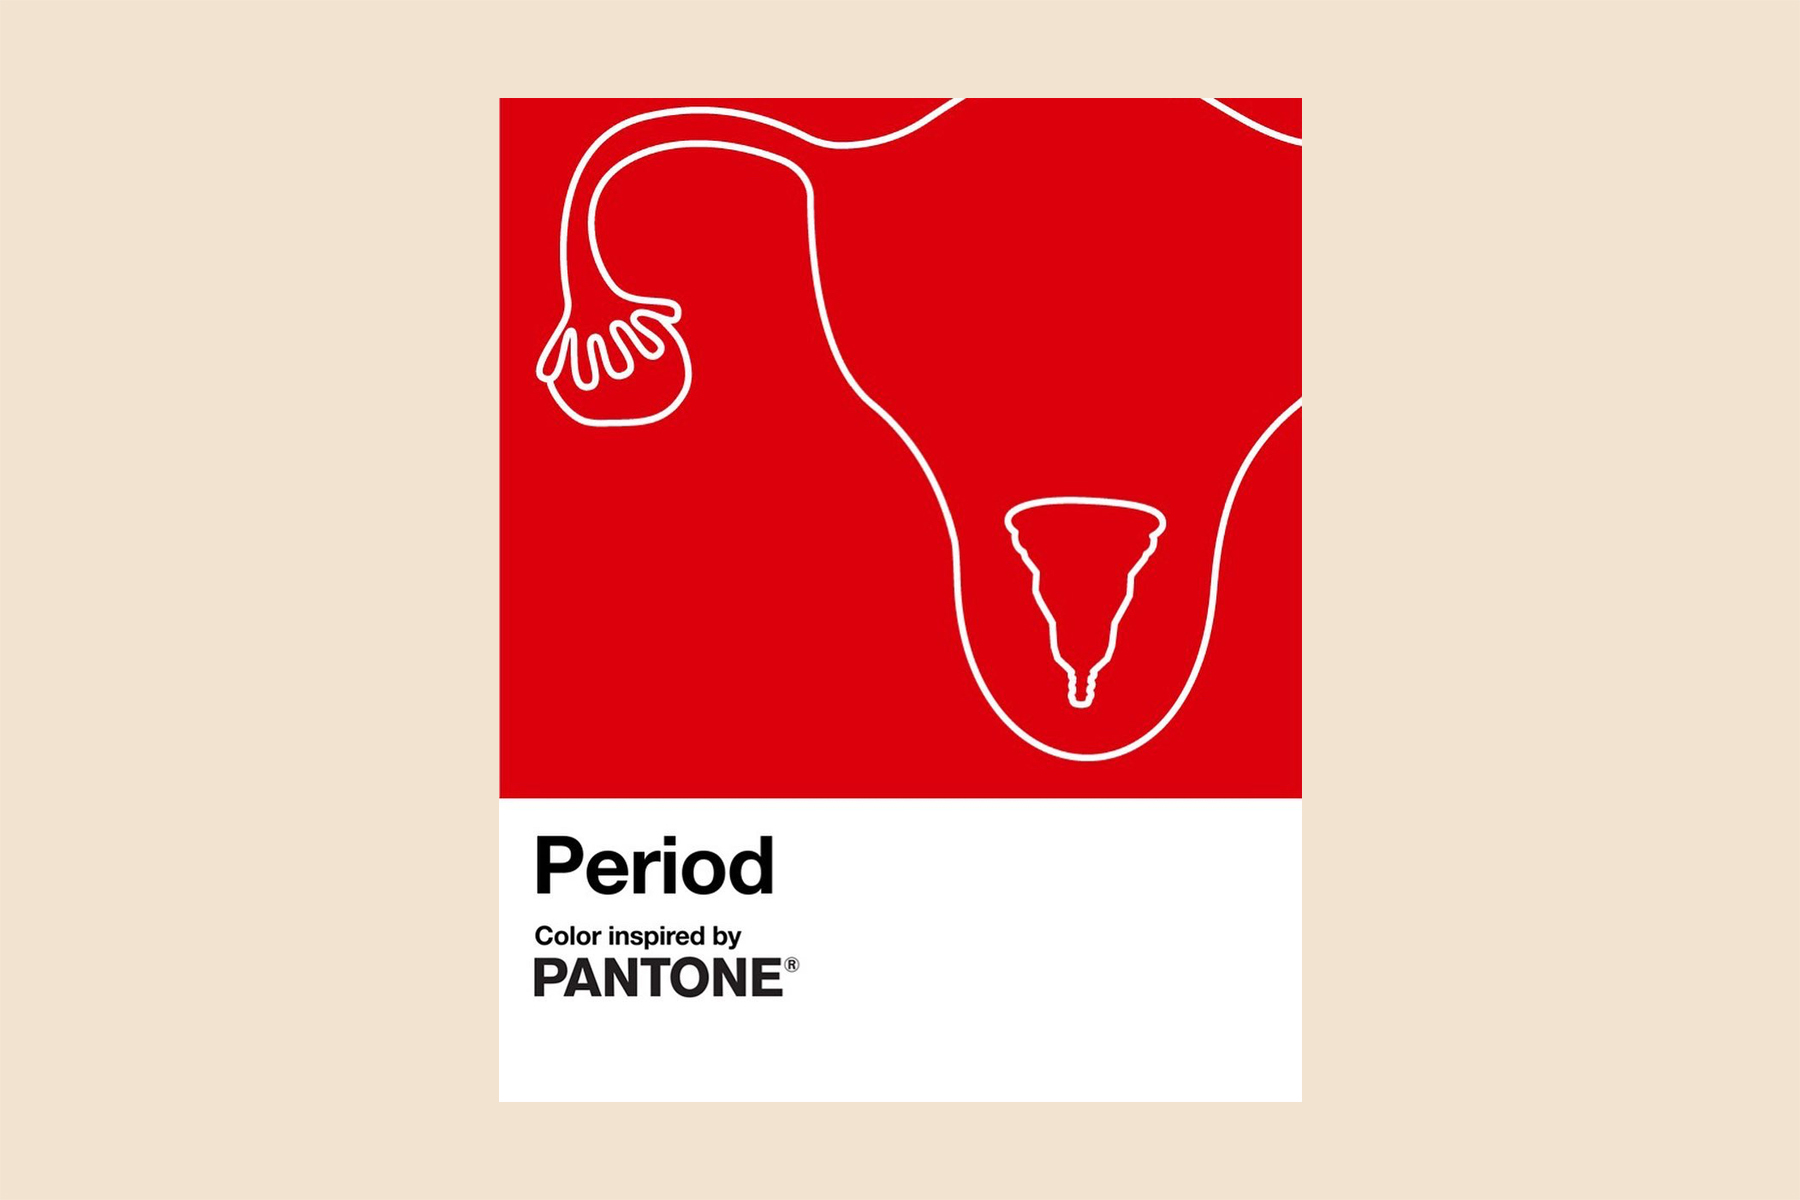 pantone period color